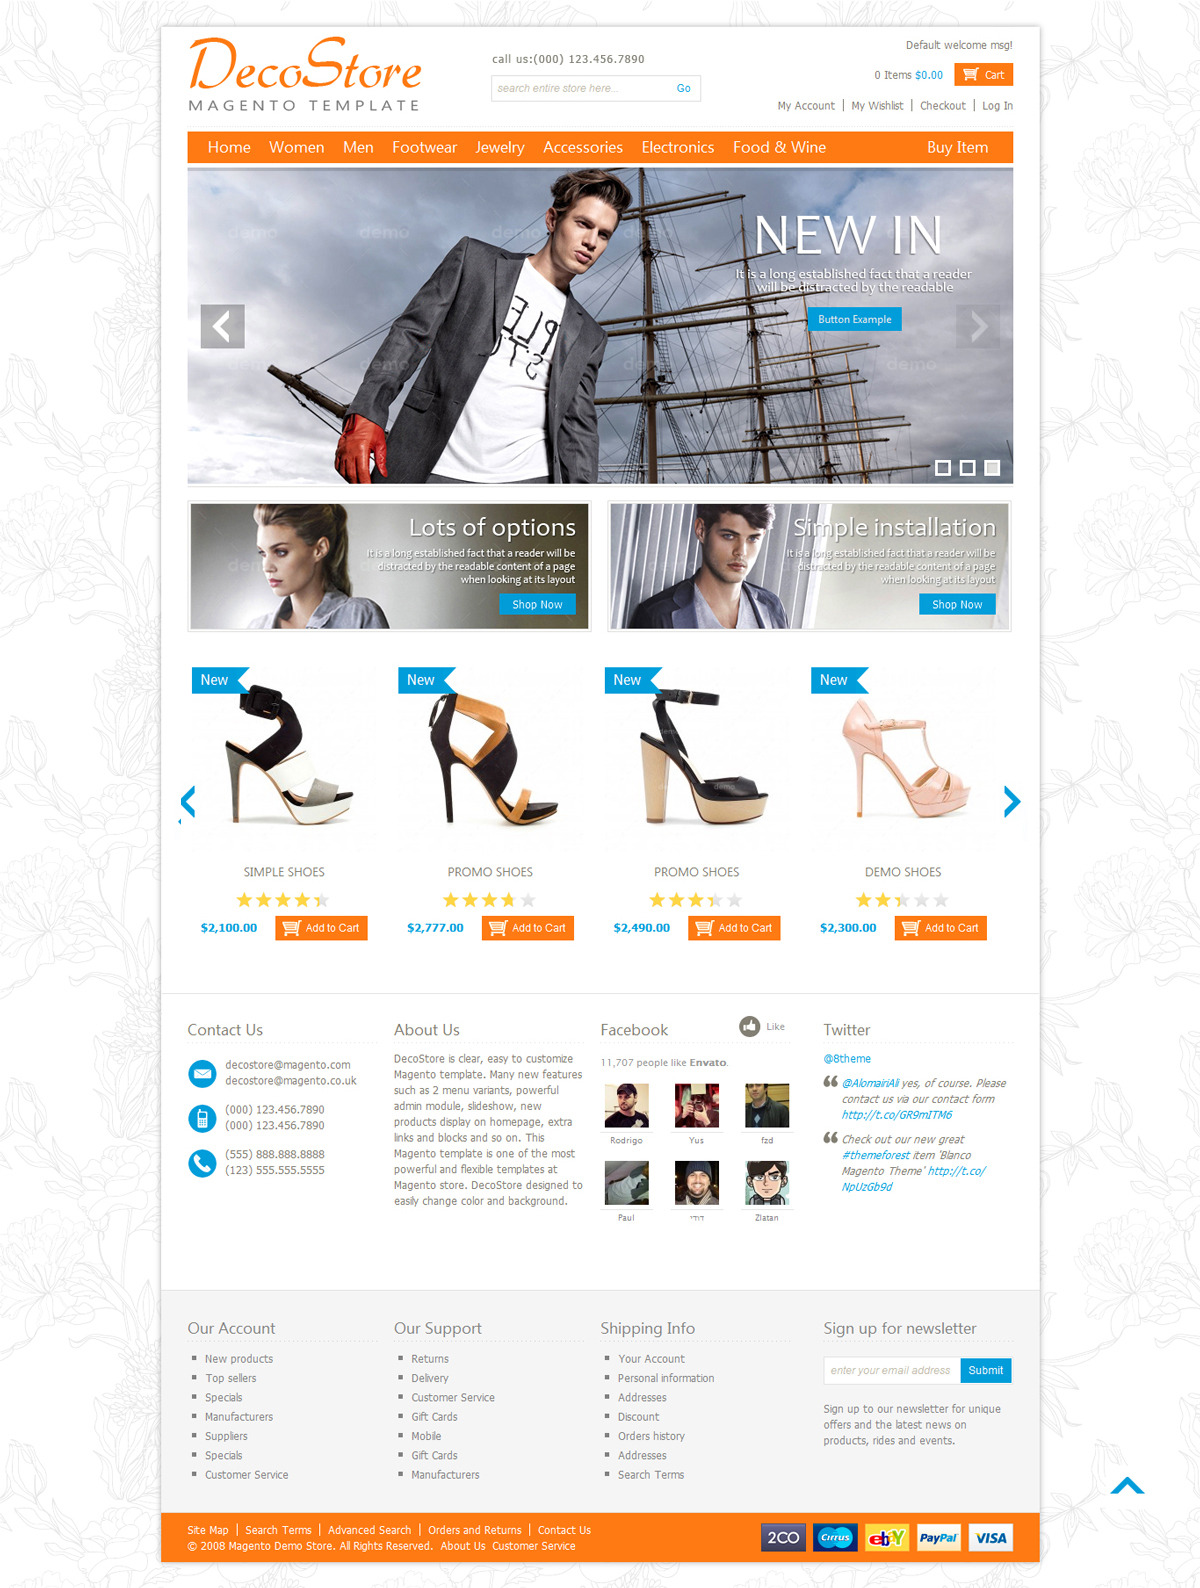 Ecommerce Decostore Magento Template